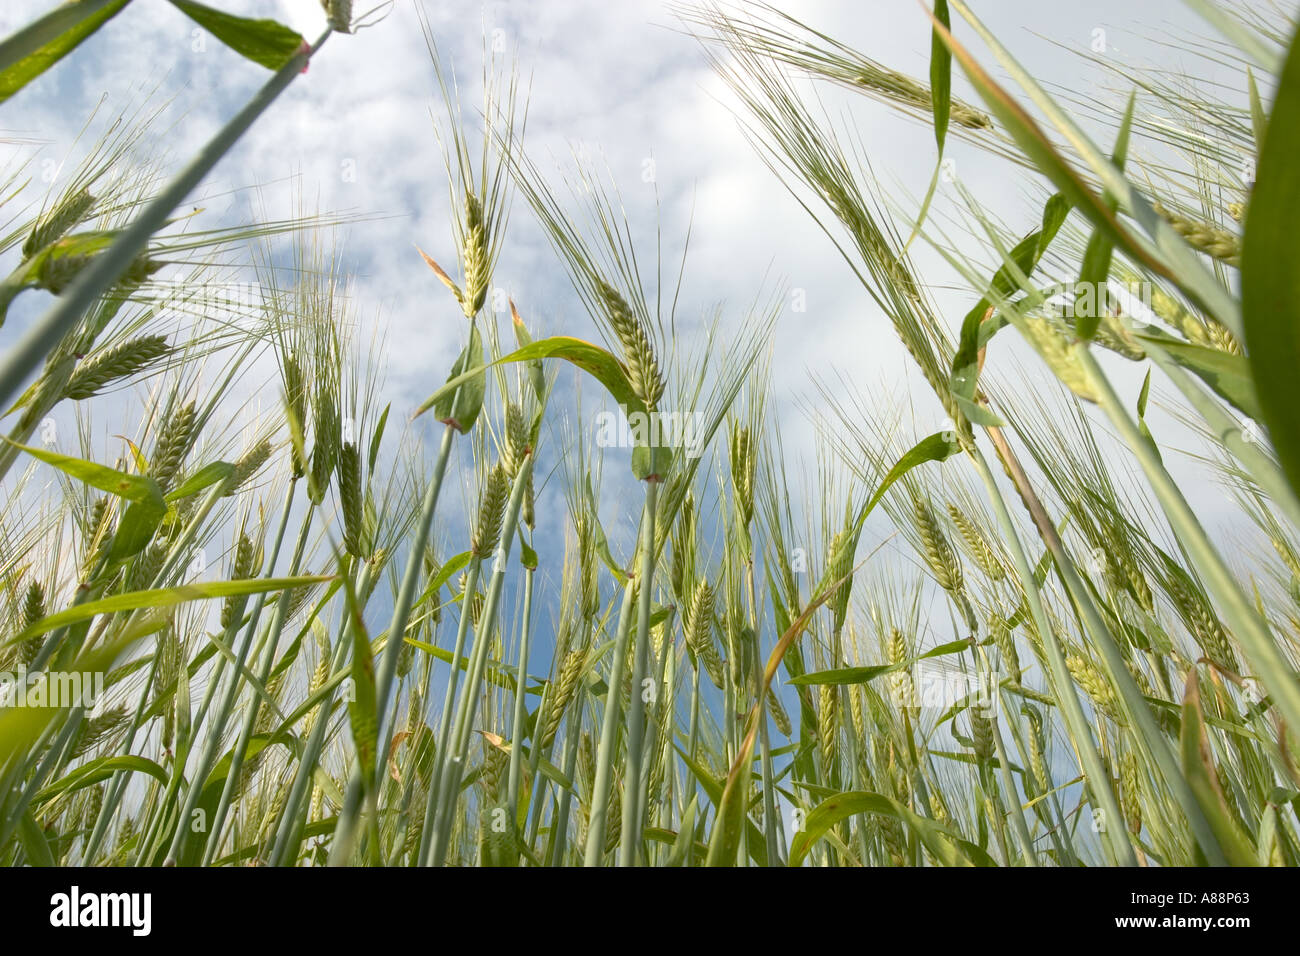 Close-up of barley  ( hordeum vulgare ) field with green unripe ears - Stock Image